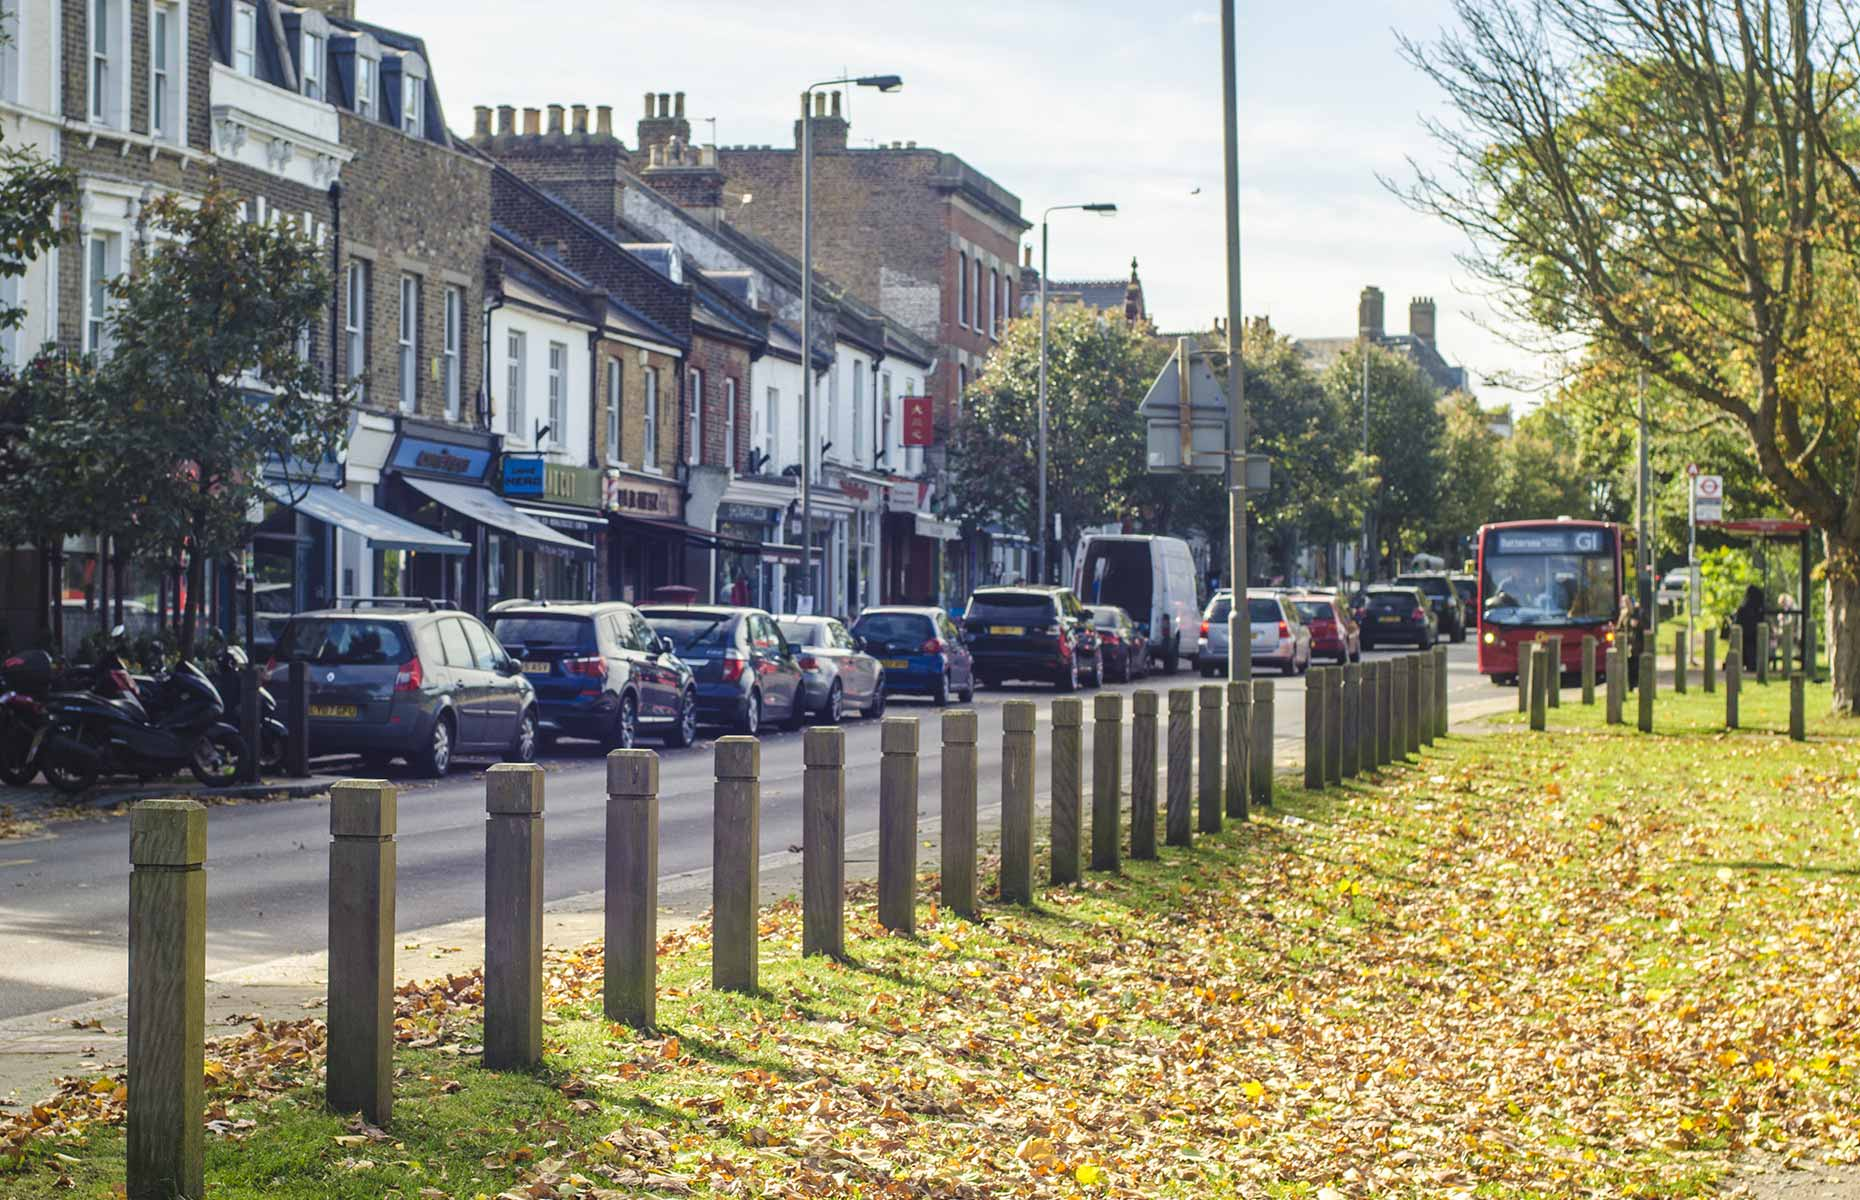 The London borough of Wandsworth has one of the cheapest council tax rates in the UK. Image: Willy Barton / Shutterstock